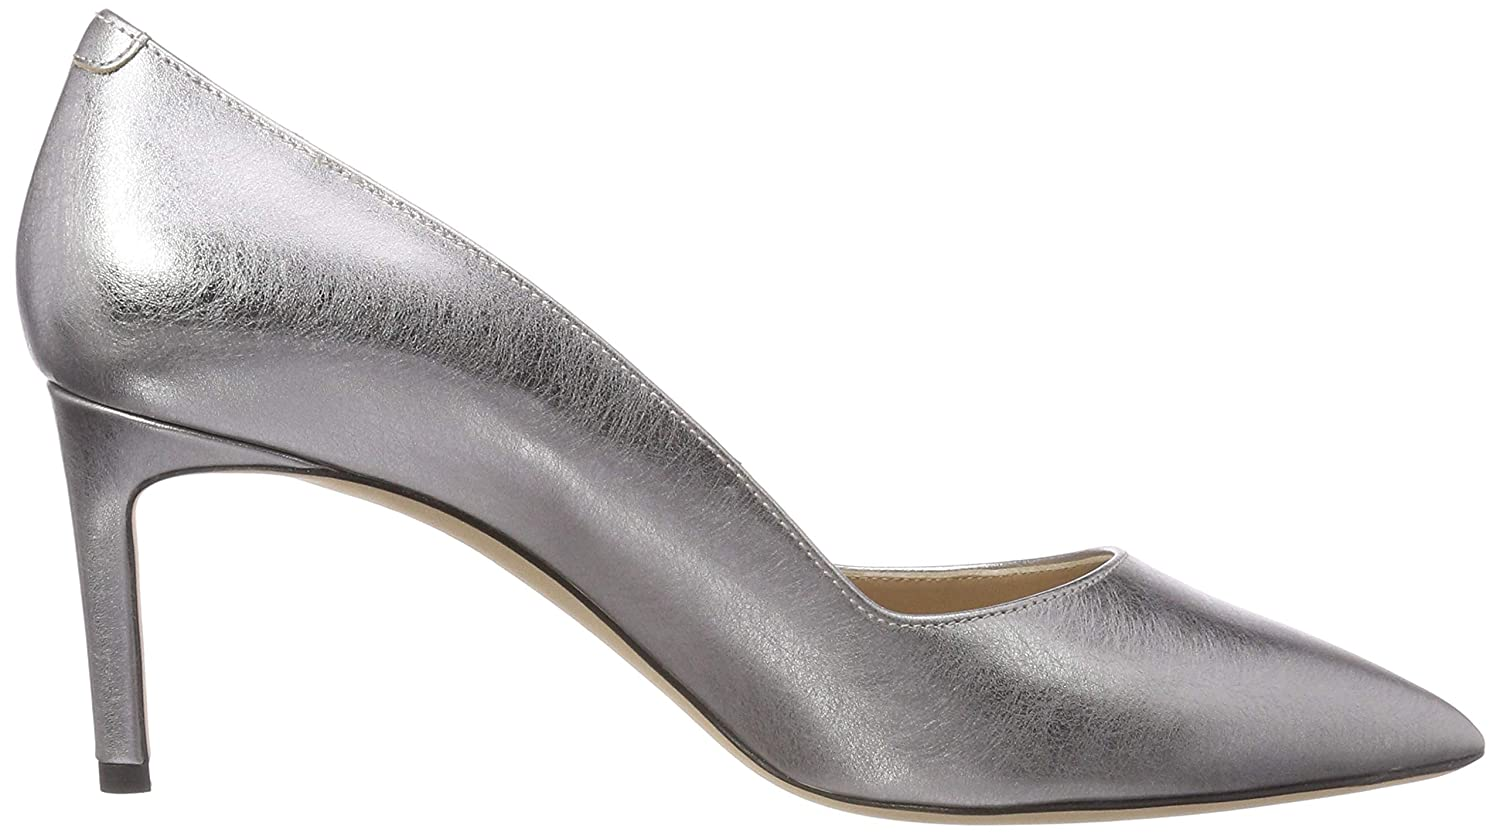 HUGO Damen Mayfair Silber Pump 70-Lam Pumps Silber Mayfair (Silver 049) bad440